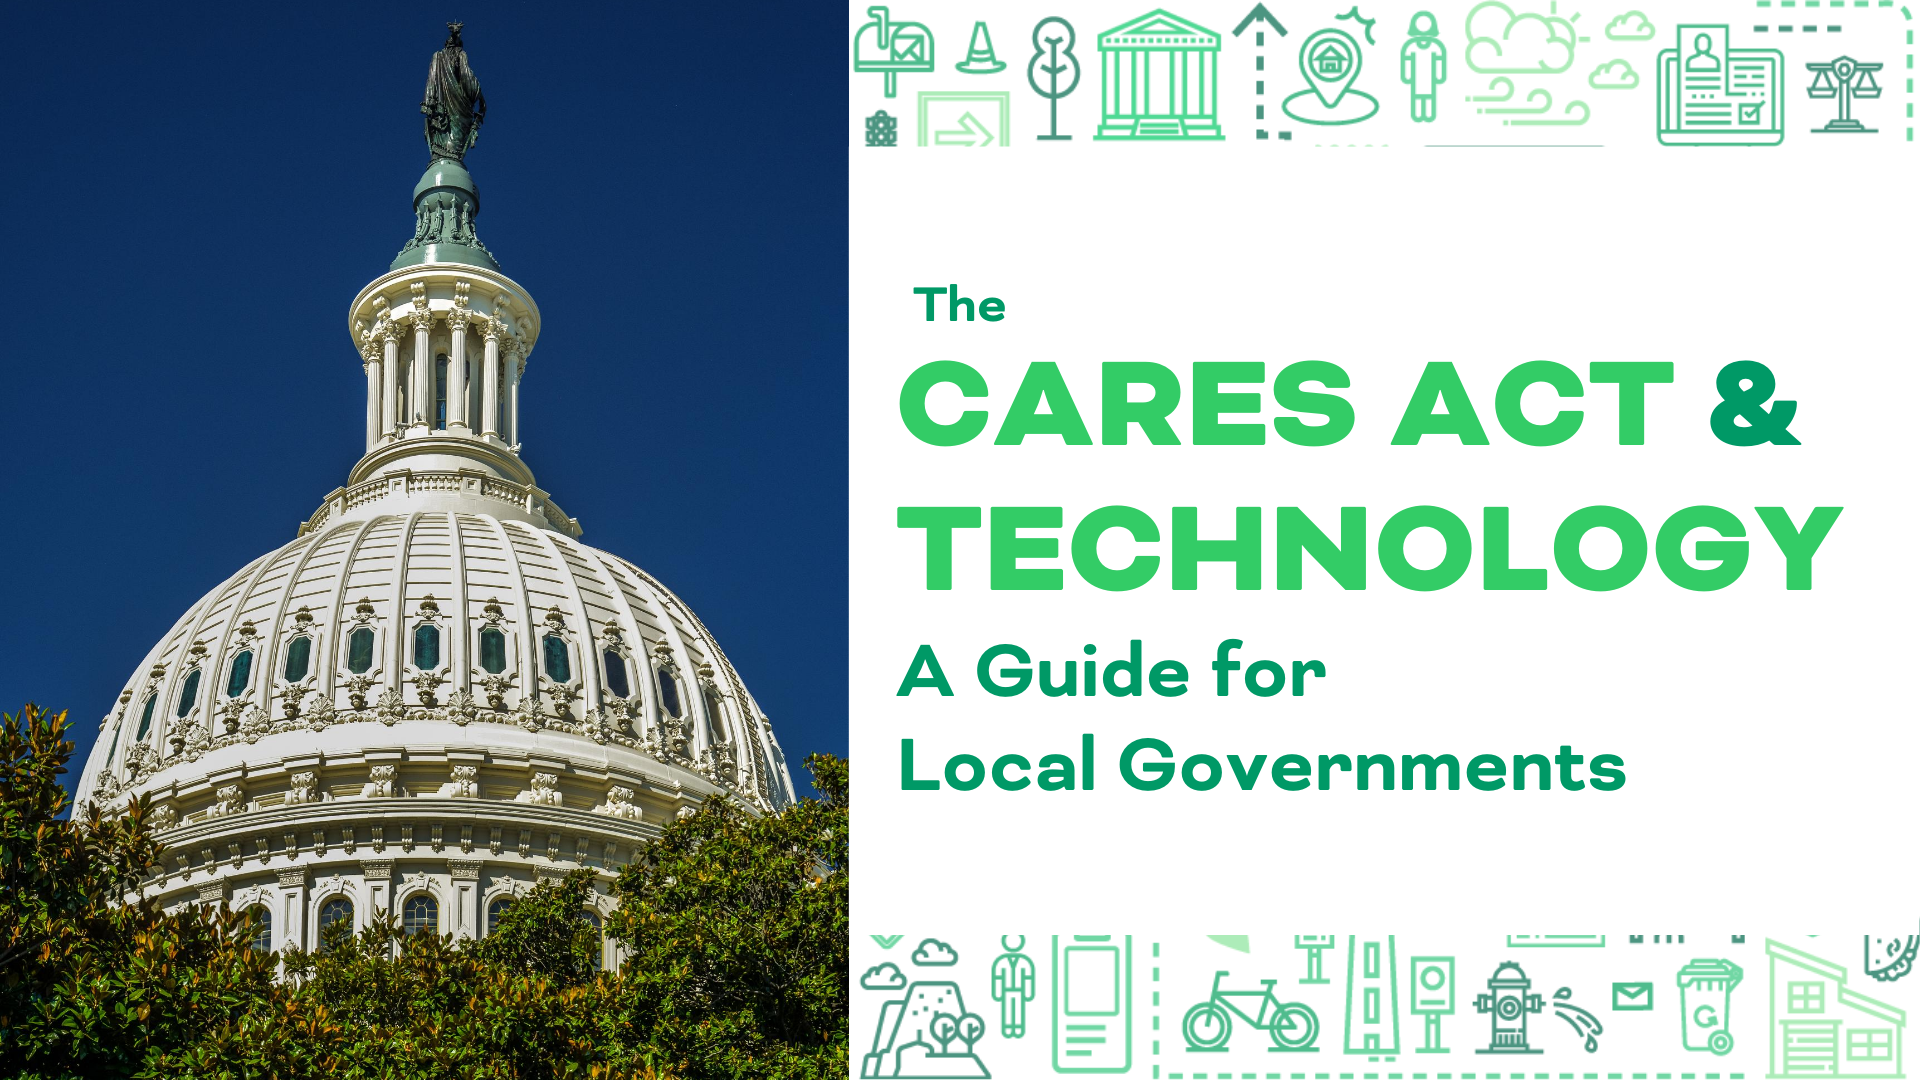 cares act and technology funding guide for local governments | rocksolid.com